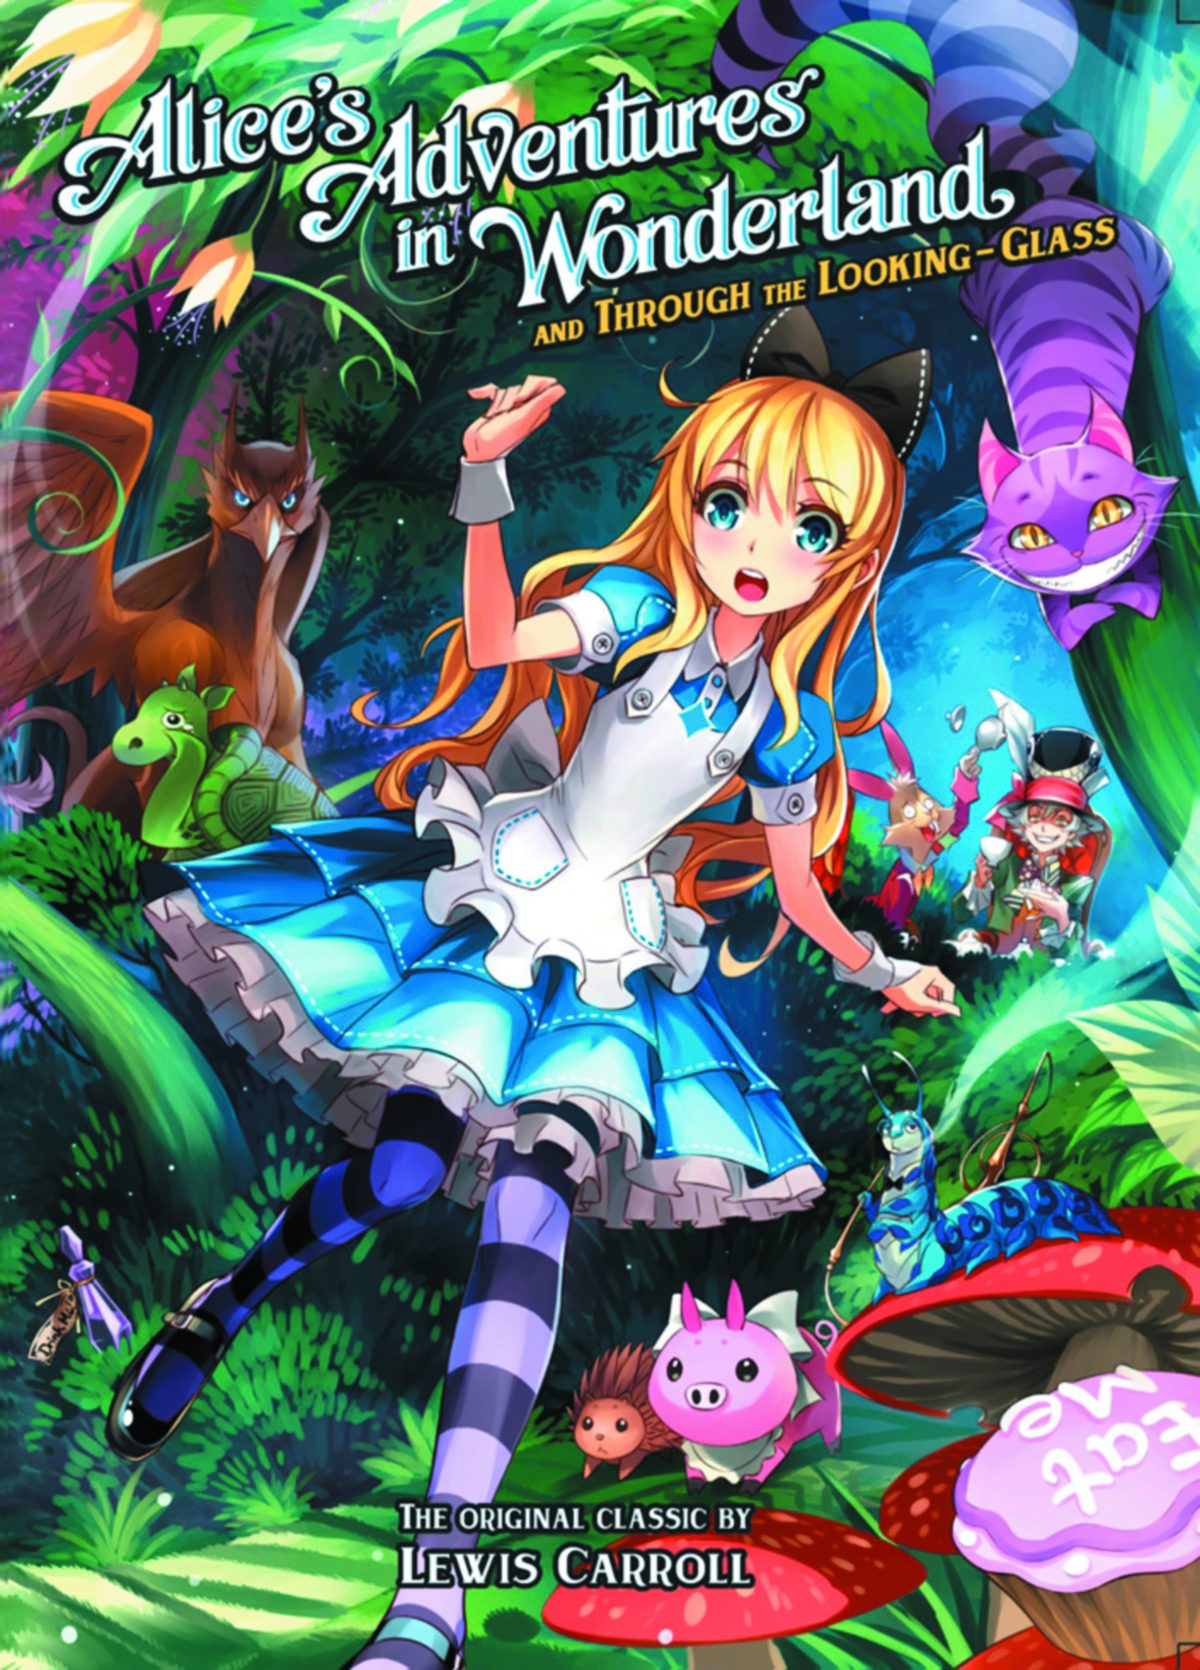 ALICES ADV IN WONDERLAND & THROUGH LOOKING GLASS GN VOL 01